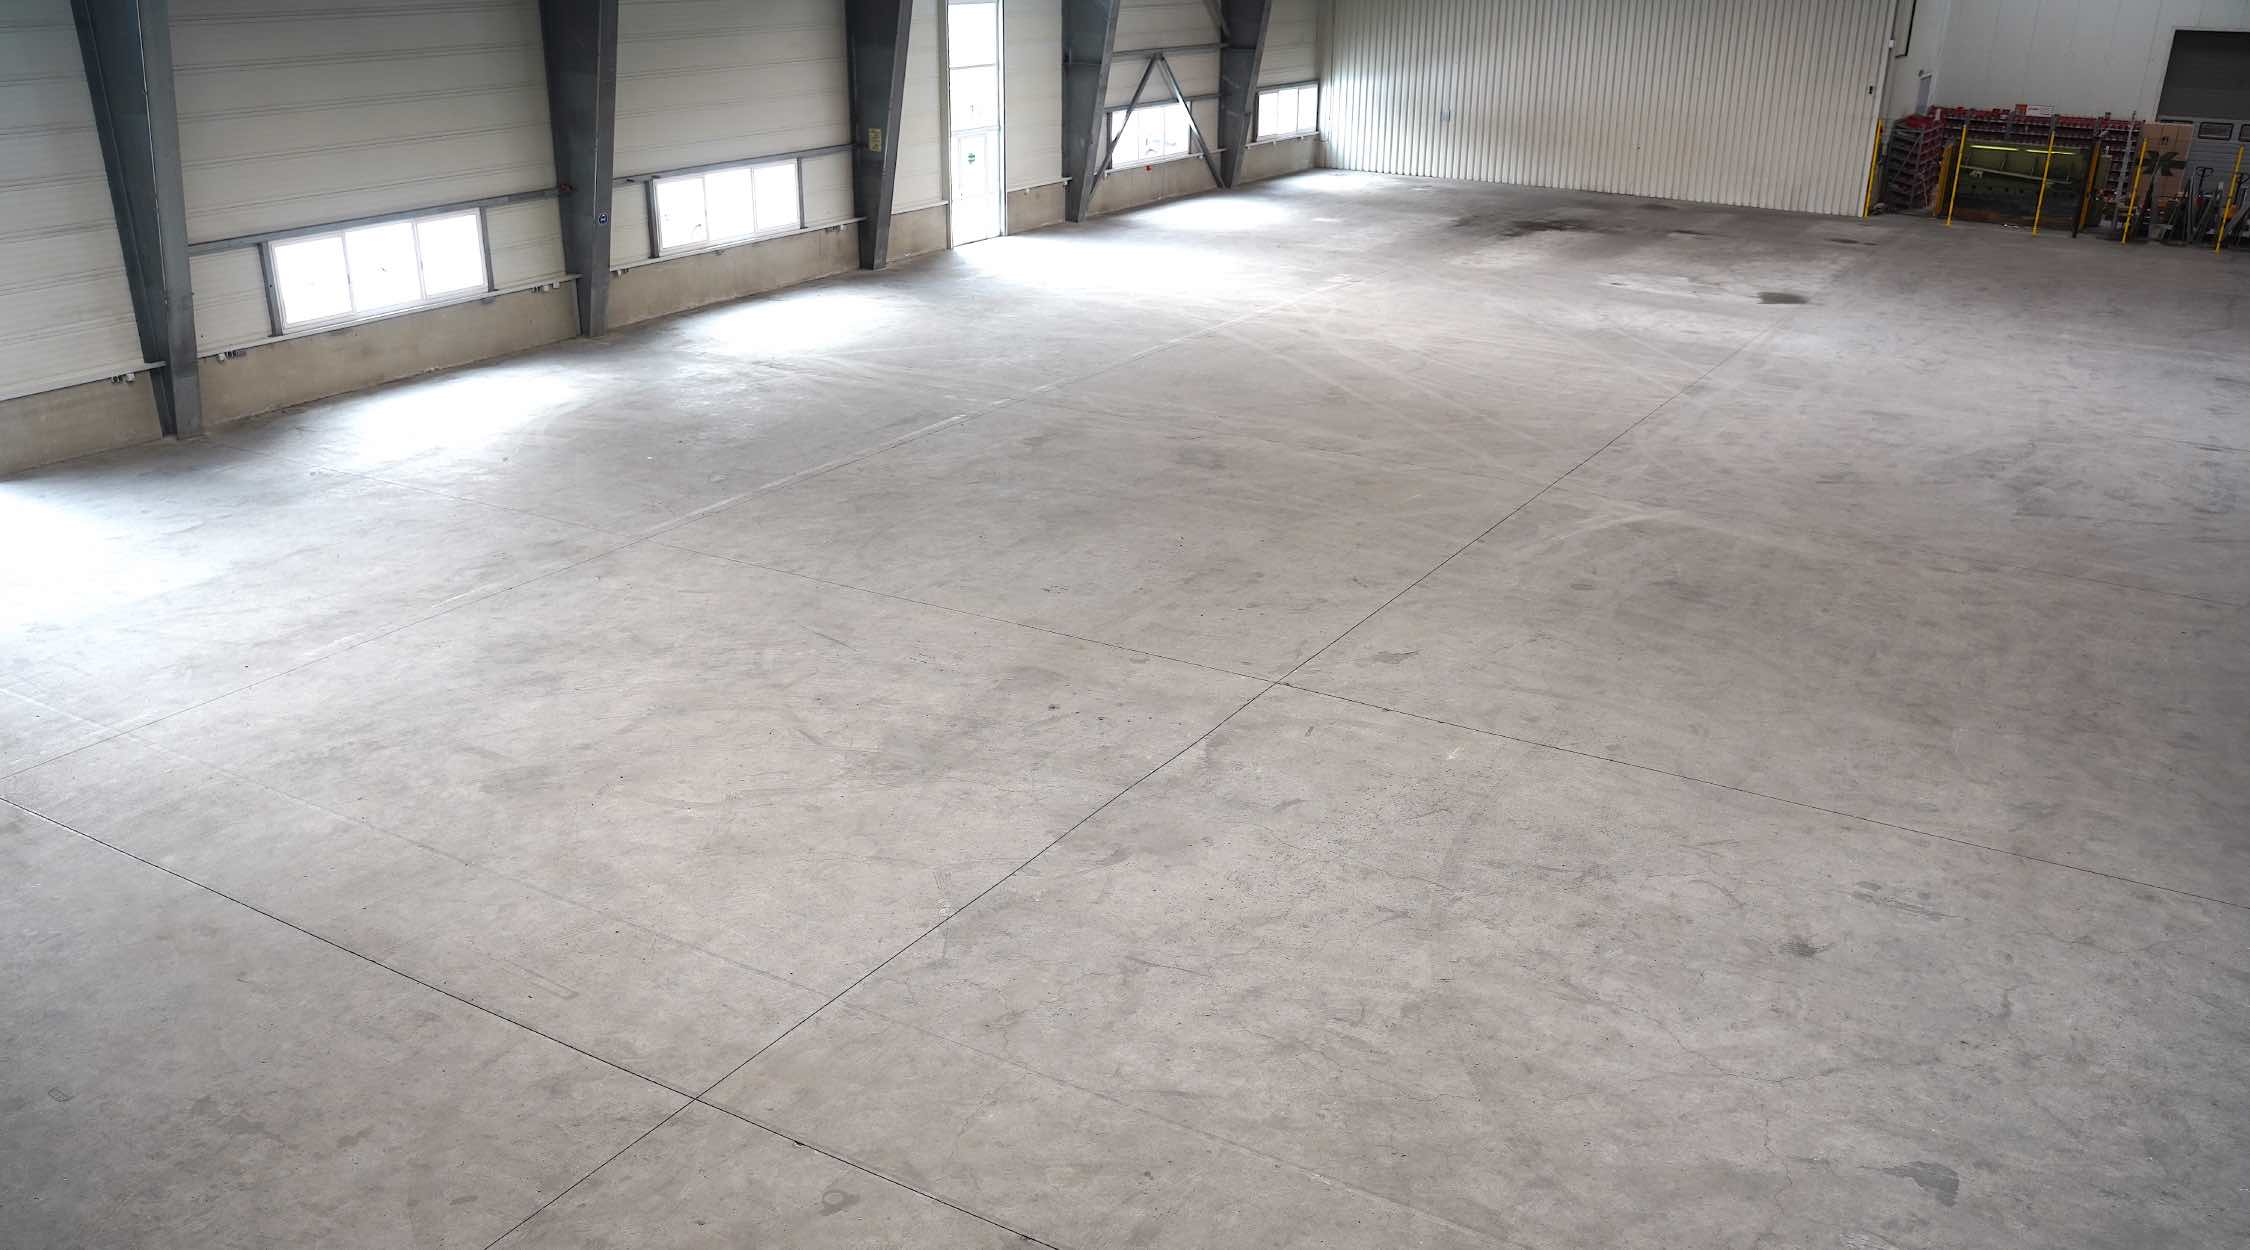 Concrete and screed